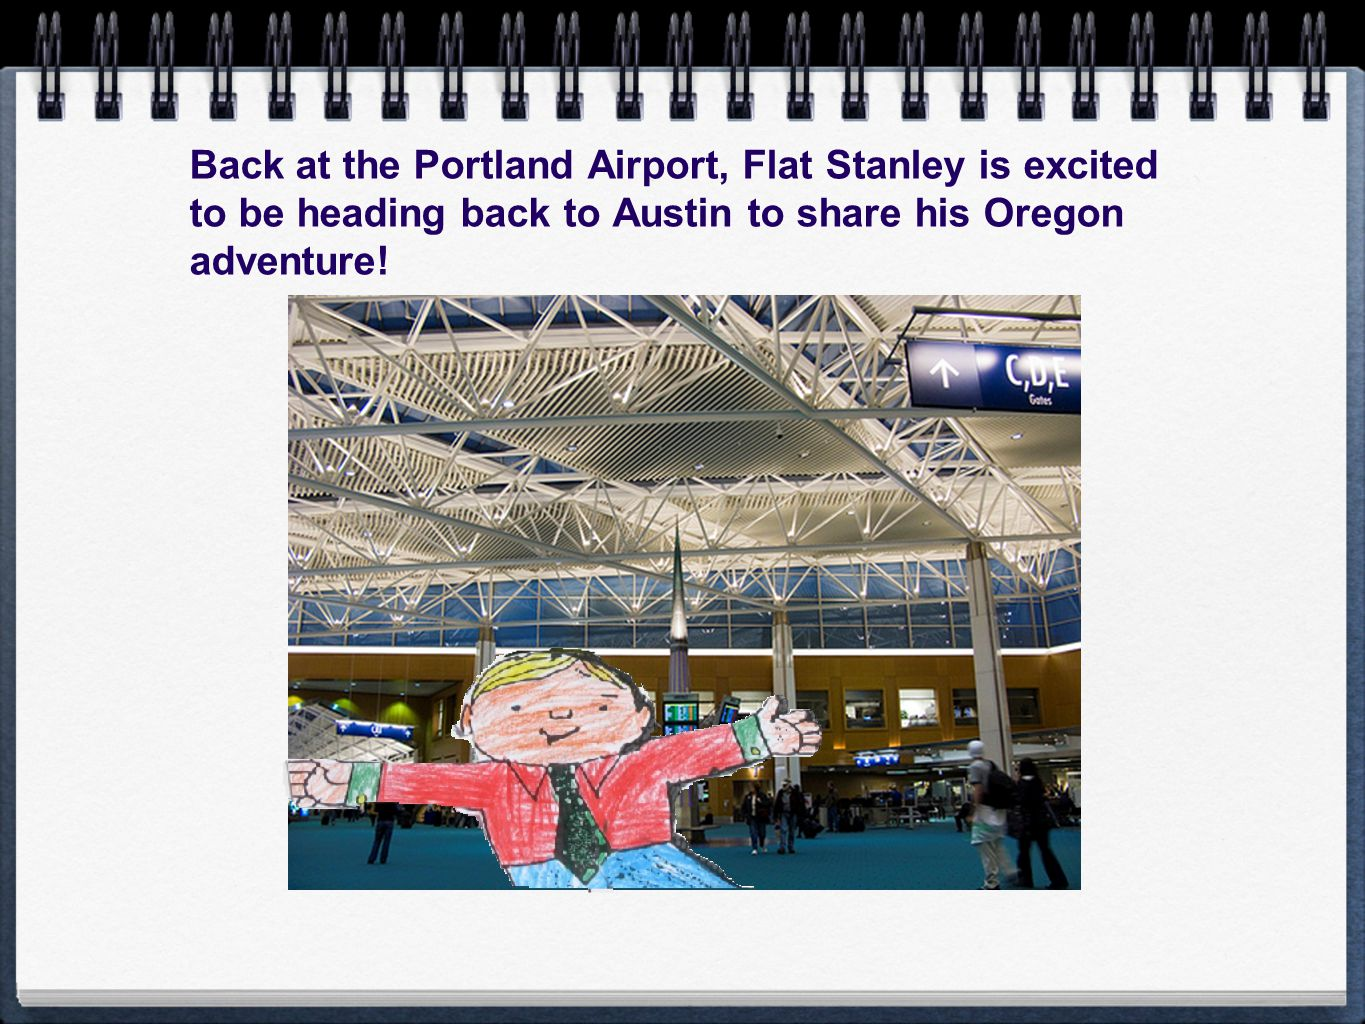 Back at the Portland Airport, Flat Stanley is excited to be heading back to Austin to share his Oregon adventure!